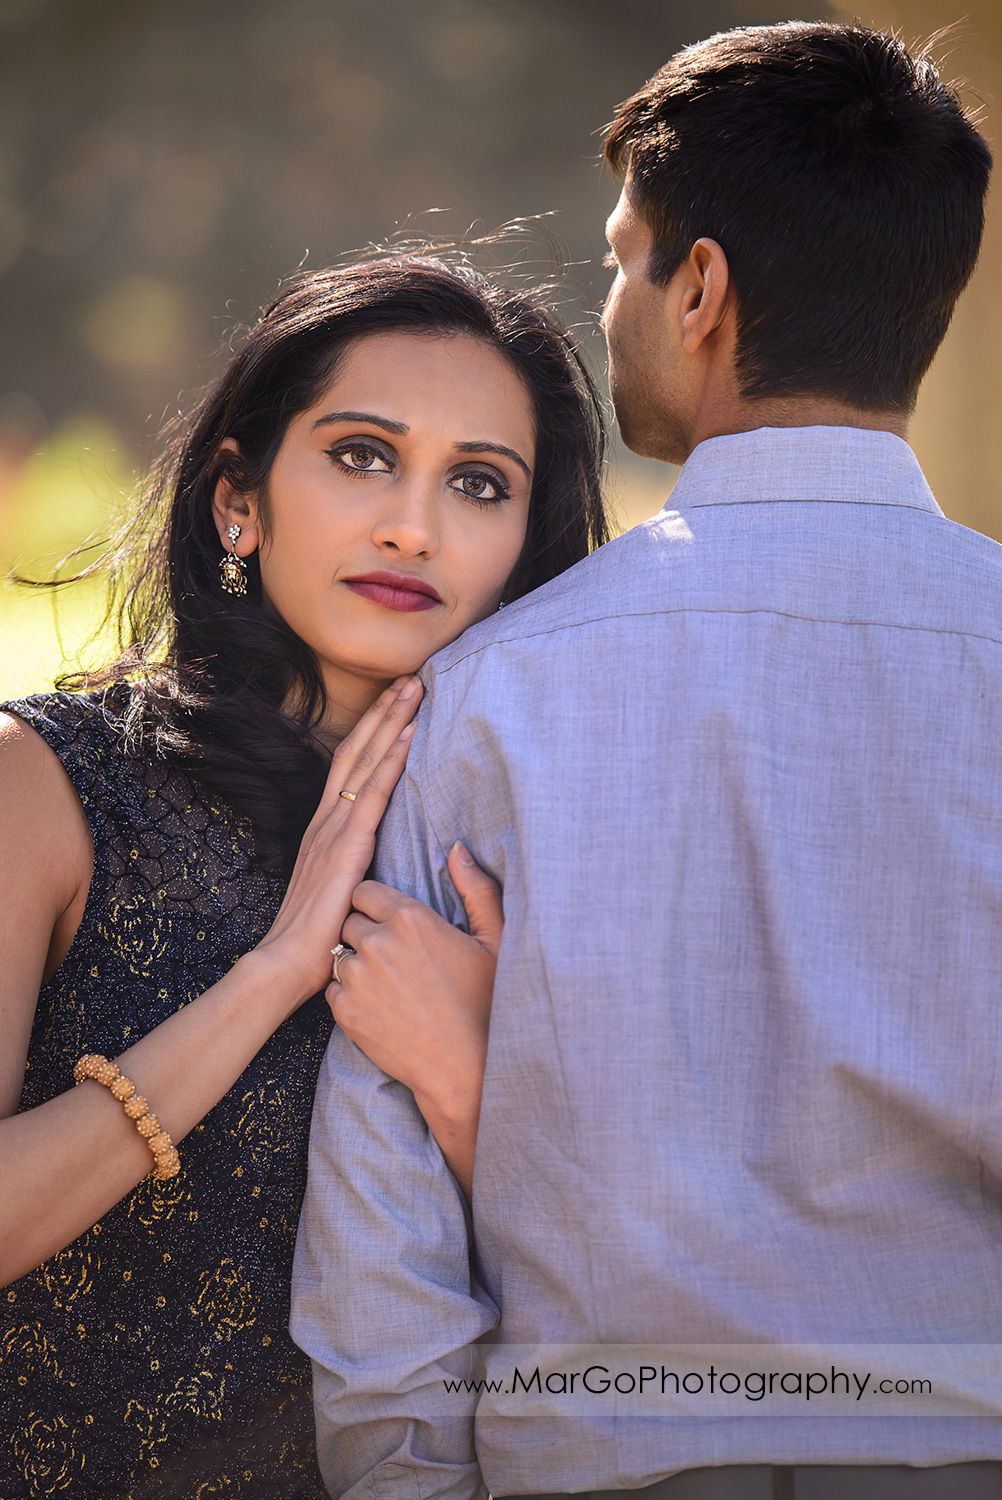 portrait of Indian woman in blue clothes holding hands on arm of the man in blue shirt during engagement session at San Francisco Presidio Park